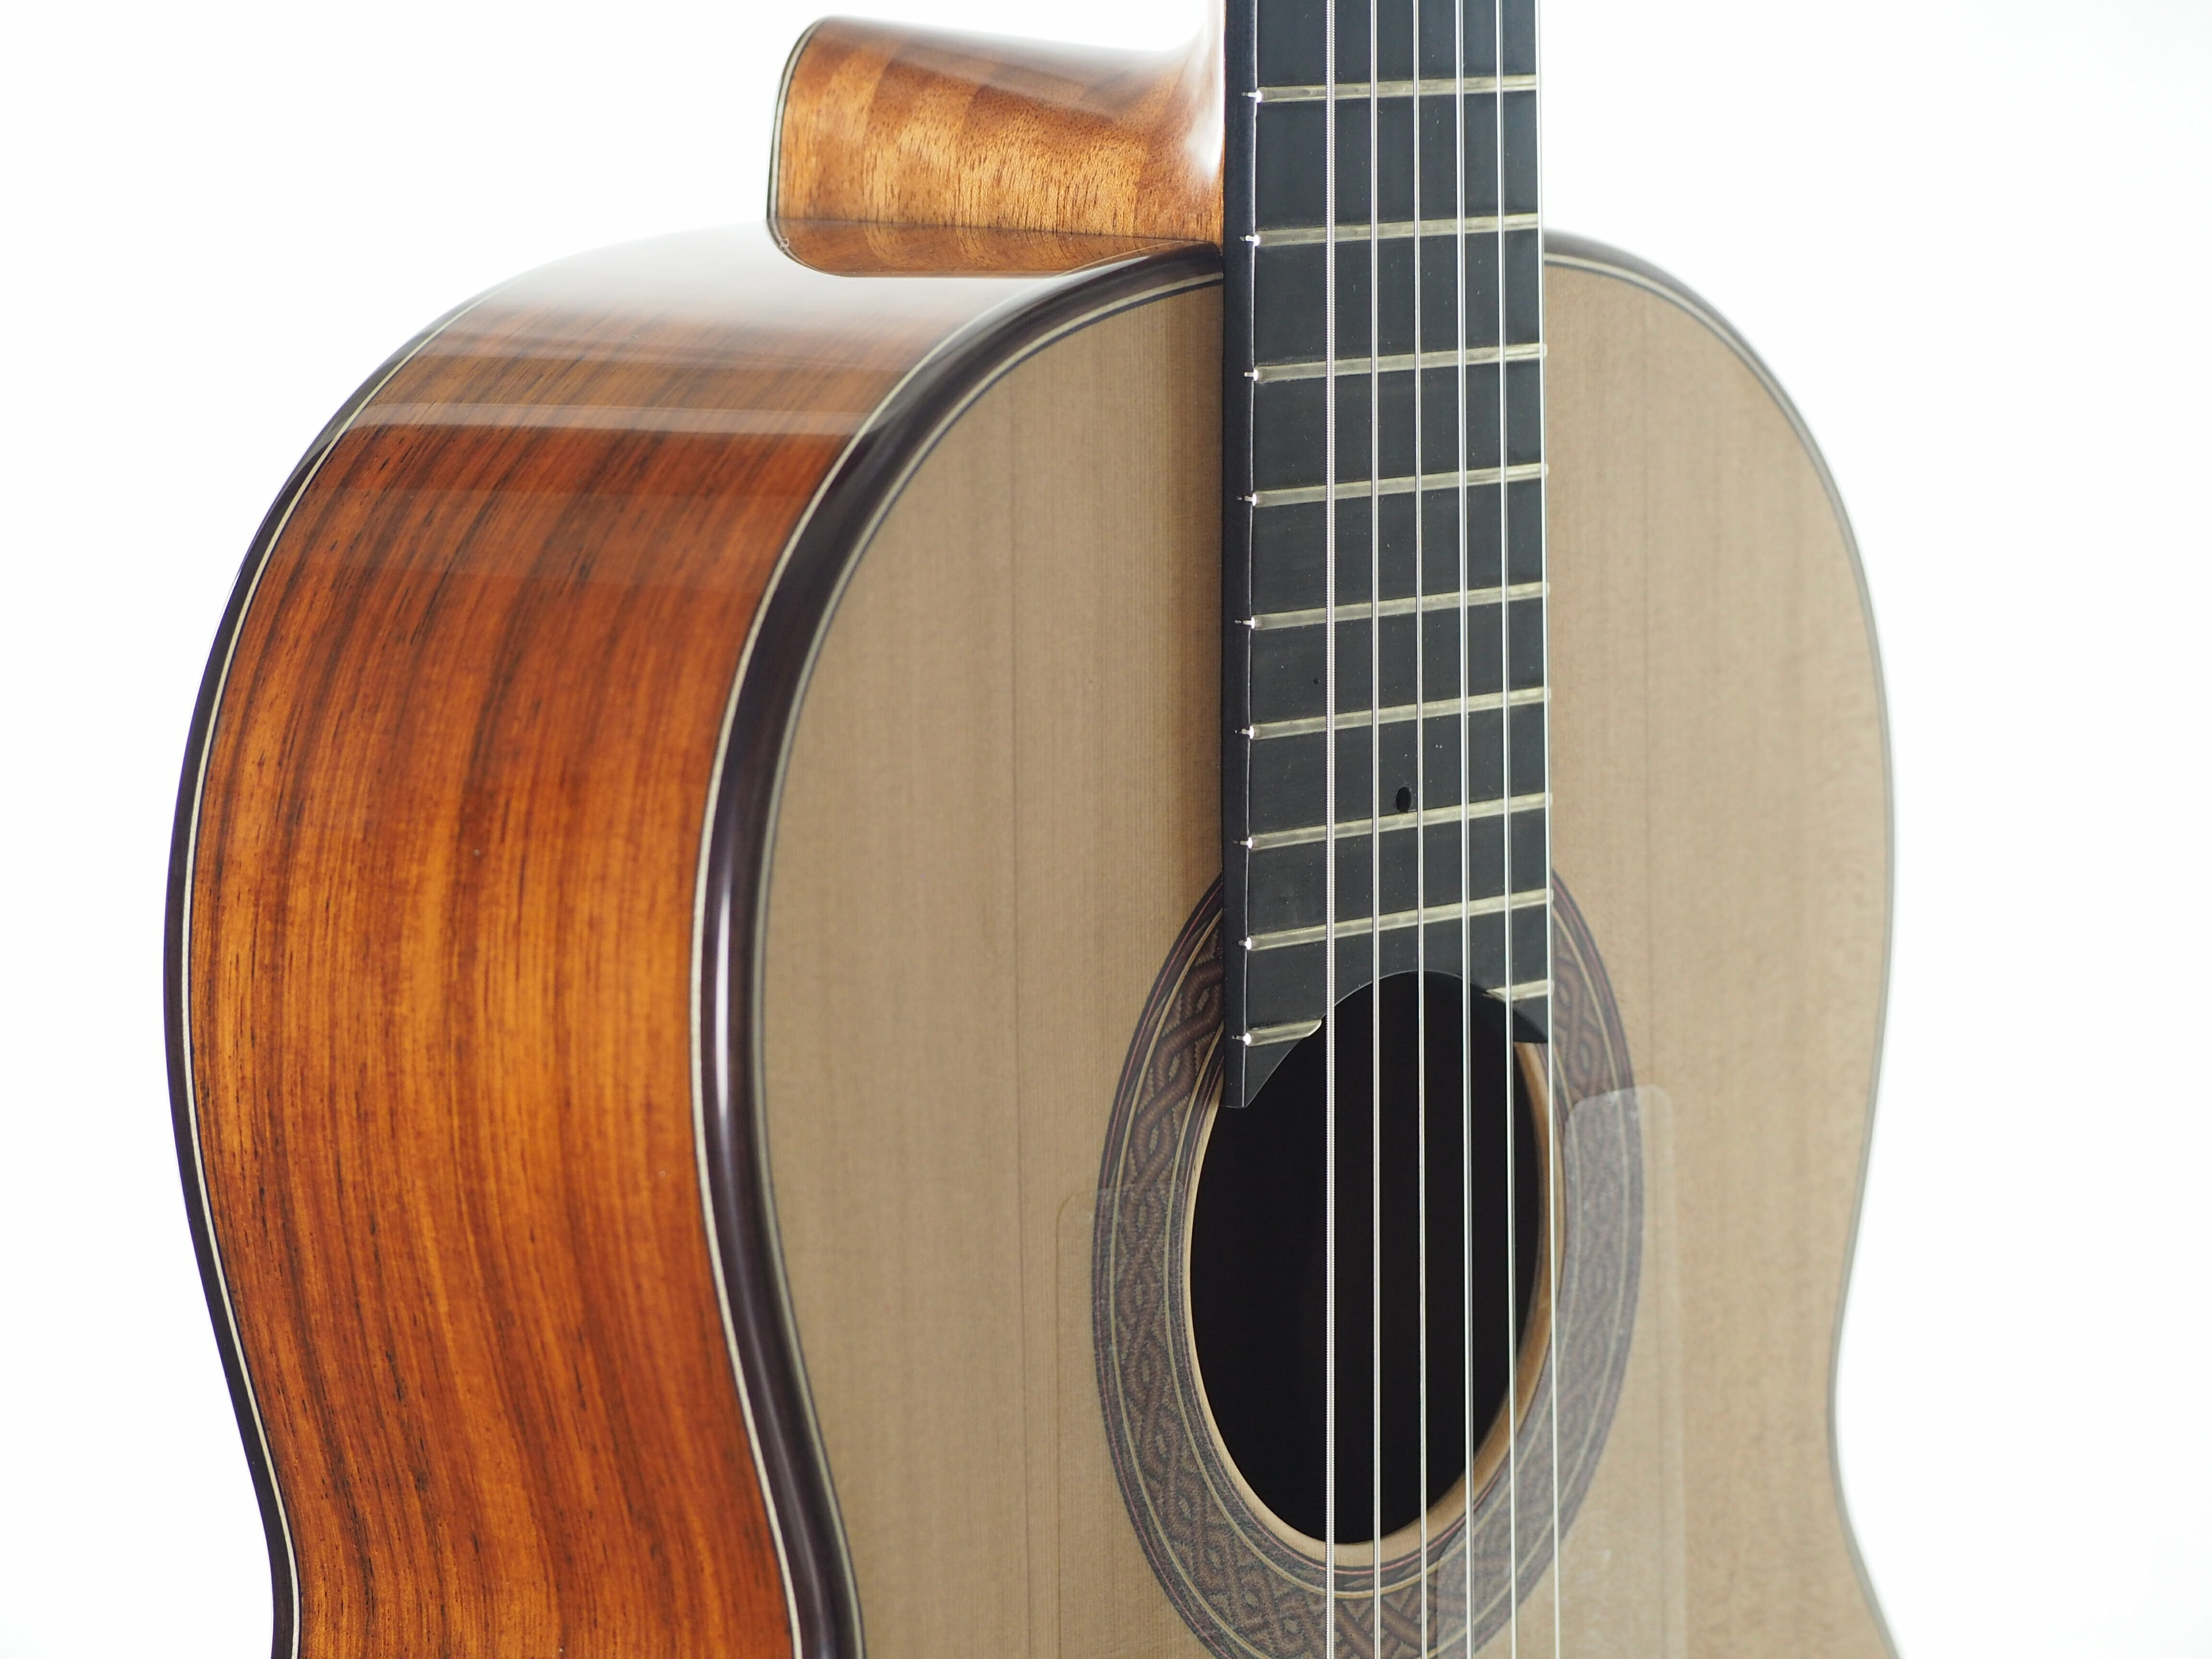 Greg Smallman & sons 2016 guitare classique de luthier barrage lattice